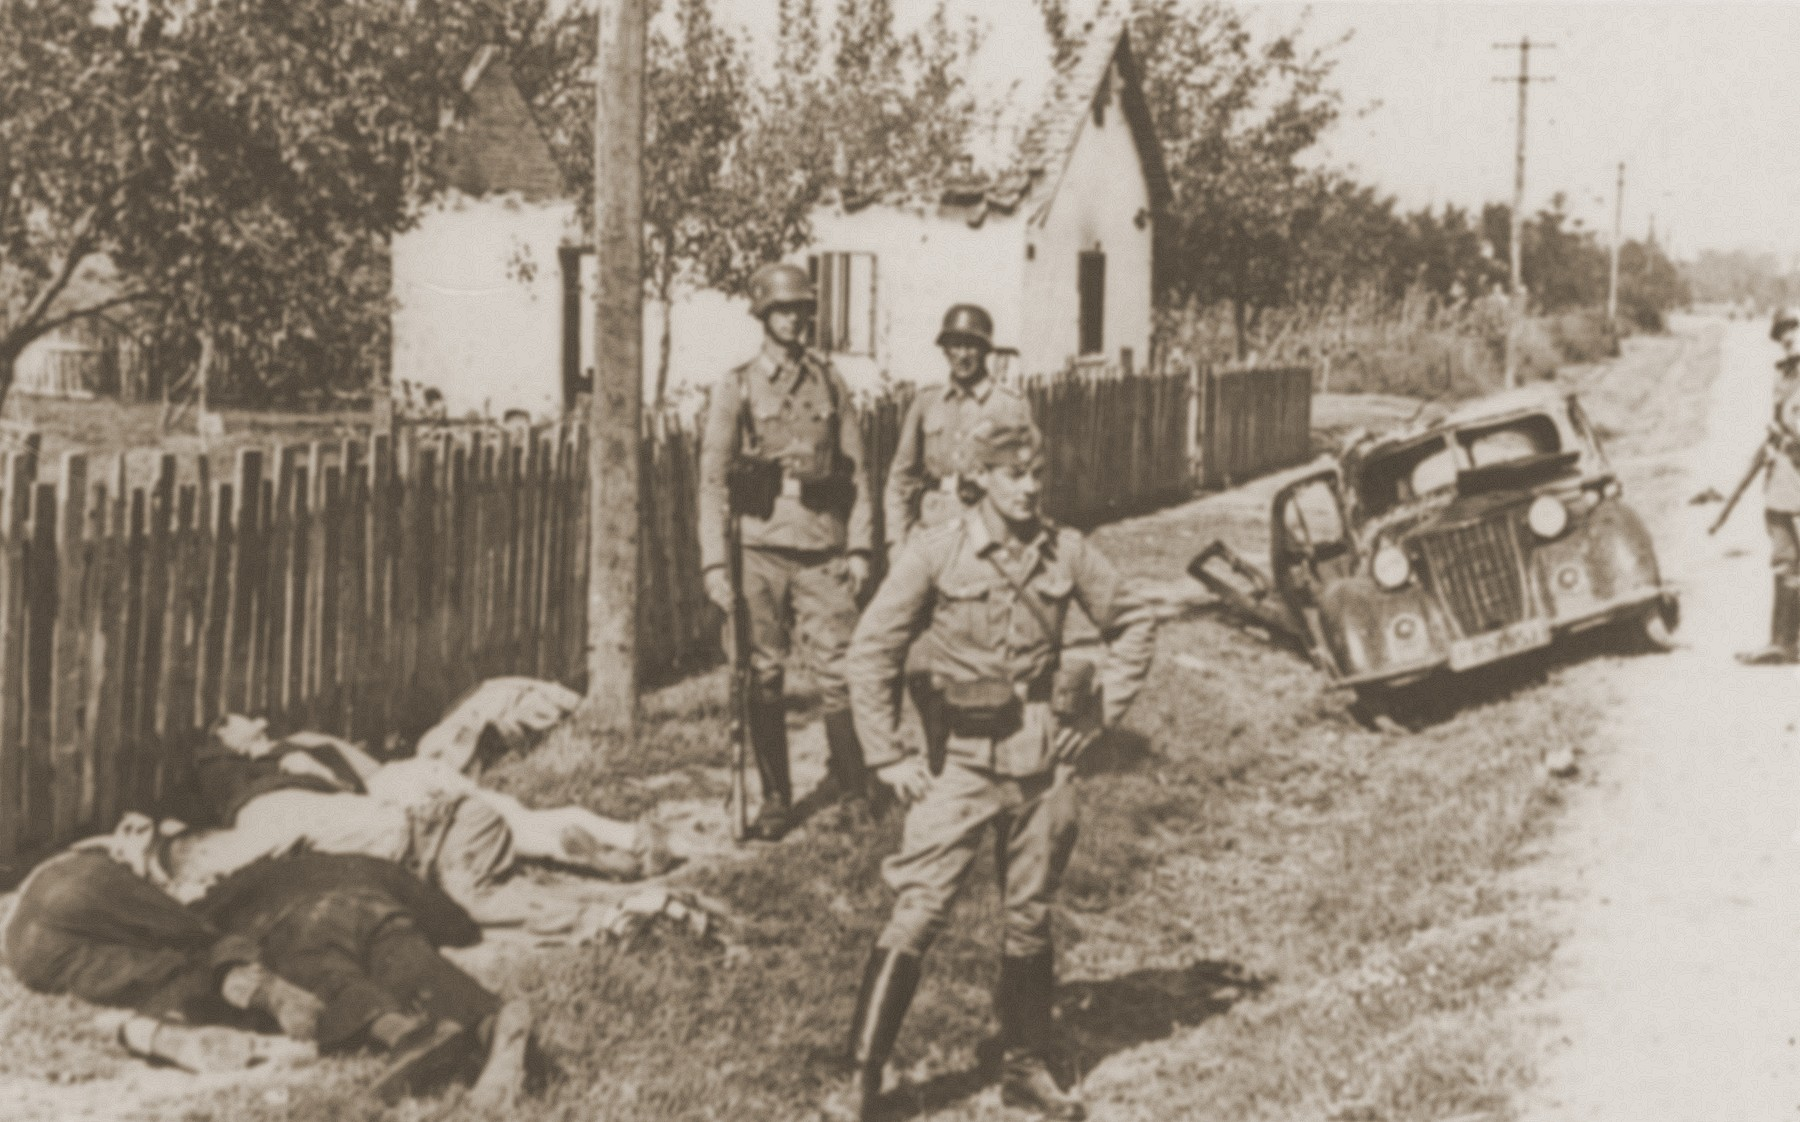 German police stand near the bodies of recently executed Serbian civilians.